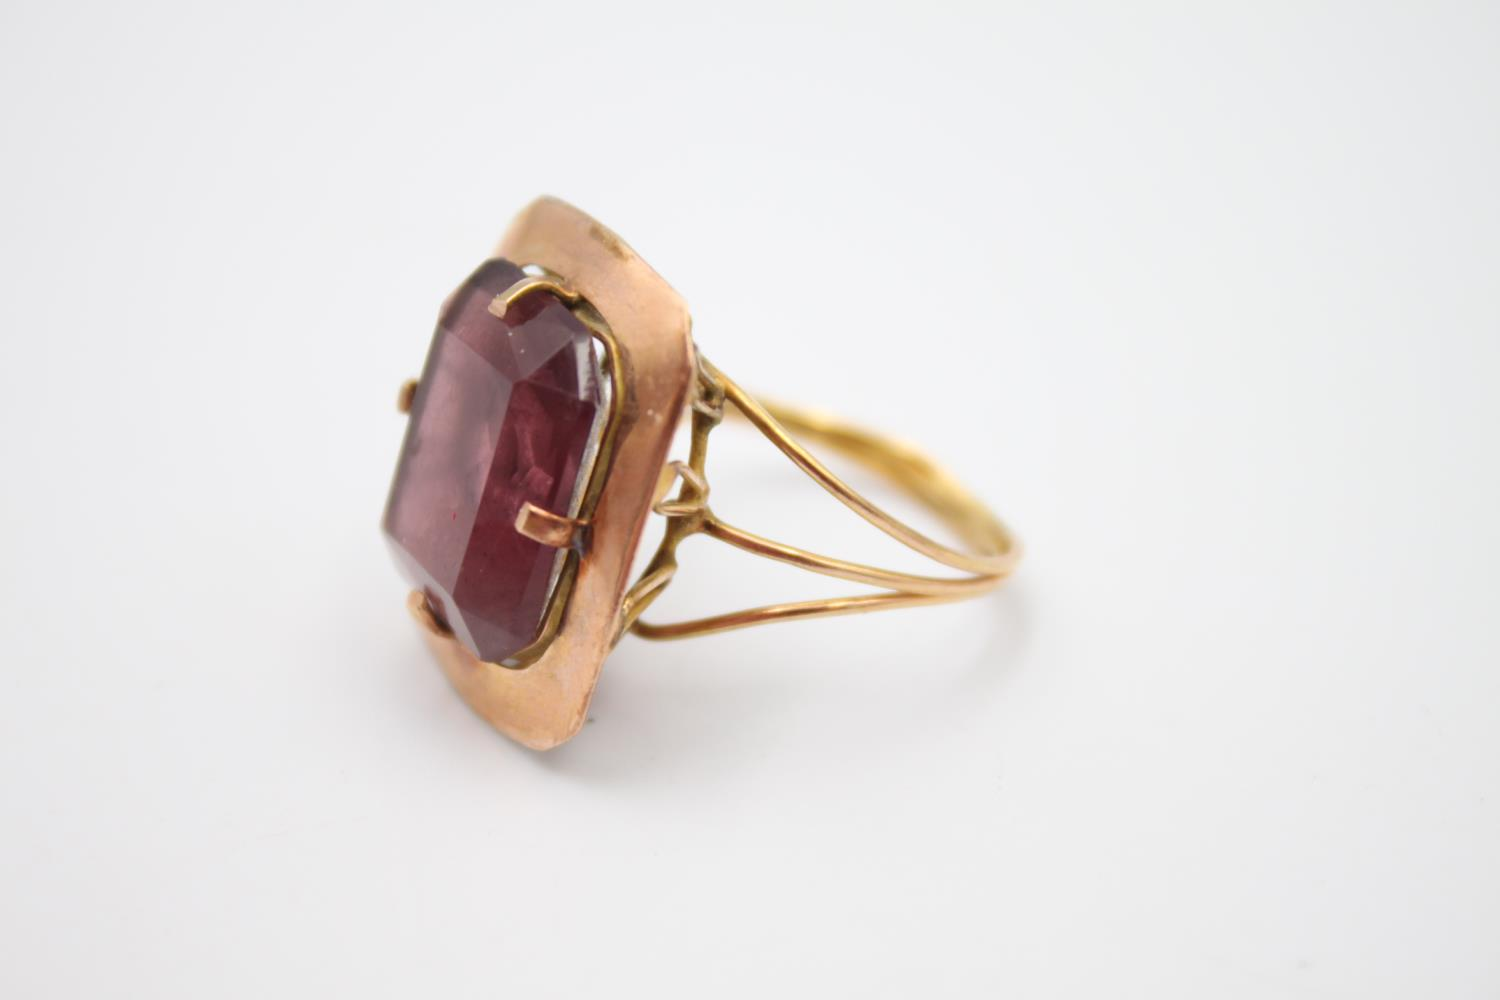 15ct rose gold amethyst paste cocktail ring 5.4g Size P - Image 2 of 5